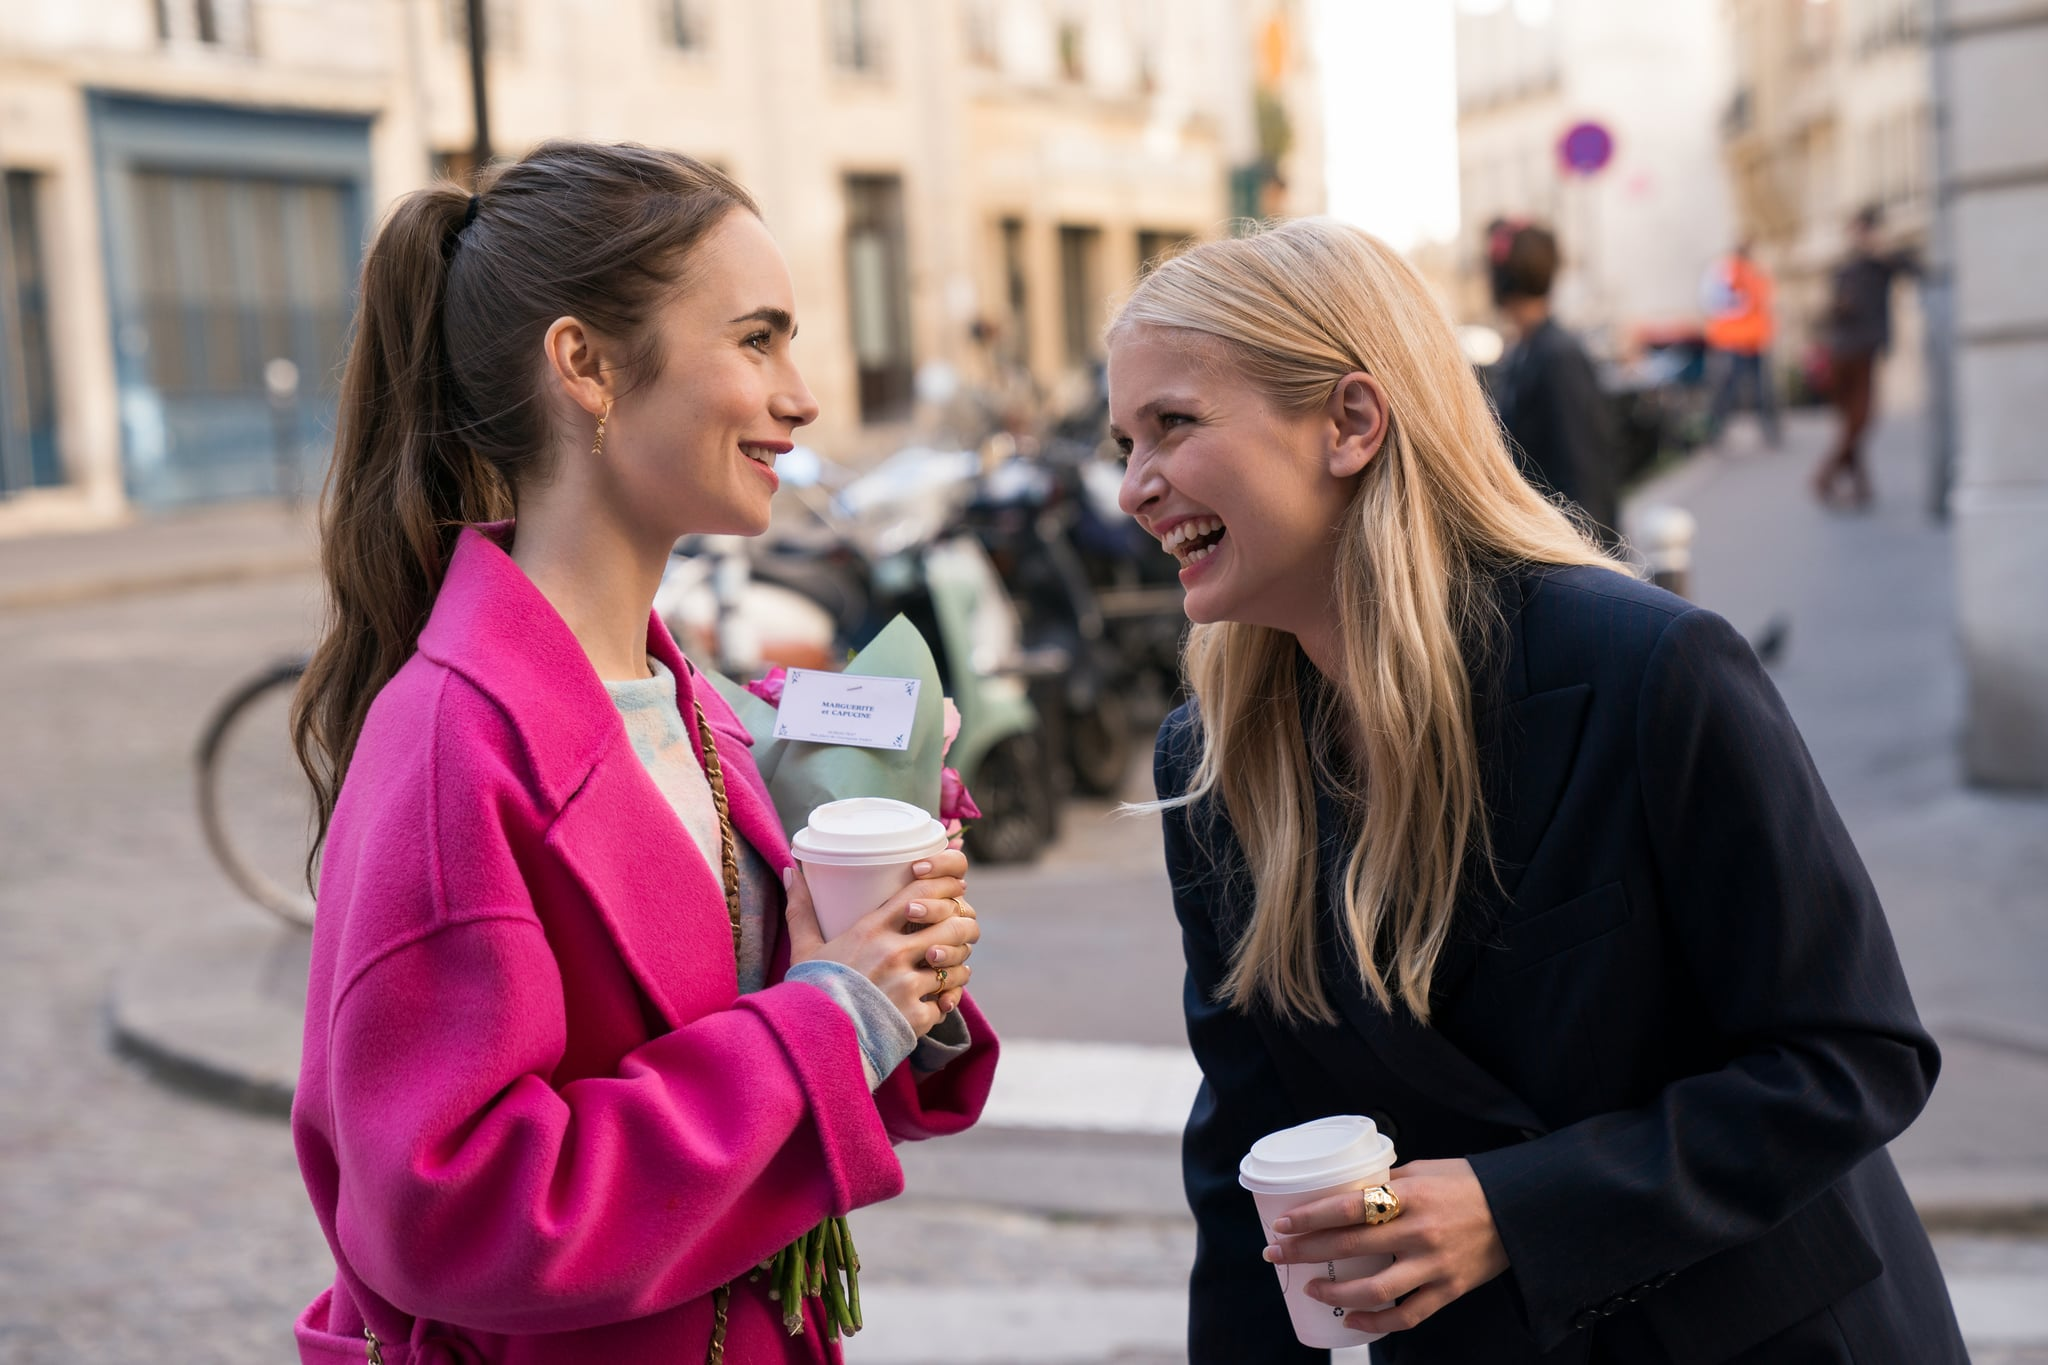 EMILY IN PARIS (L to R) LILY COLLINS as EMILY and CAMILLE RAZAT as CAMILLE in episode 104 of EMILY IN PARIS. Cr. STEPHANIE BRANCHU/NETFLIX  2020